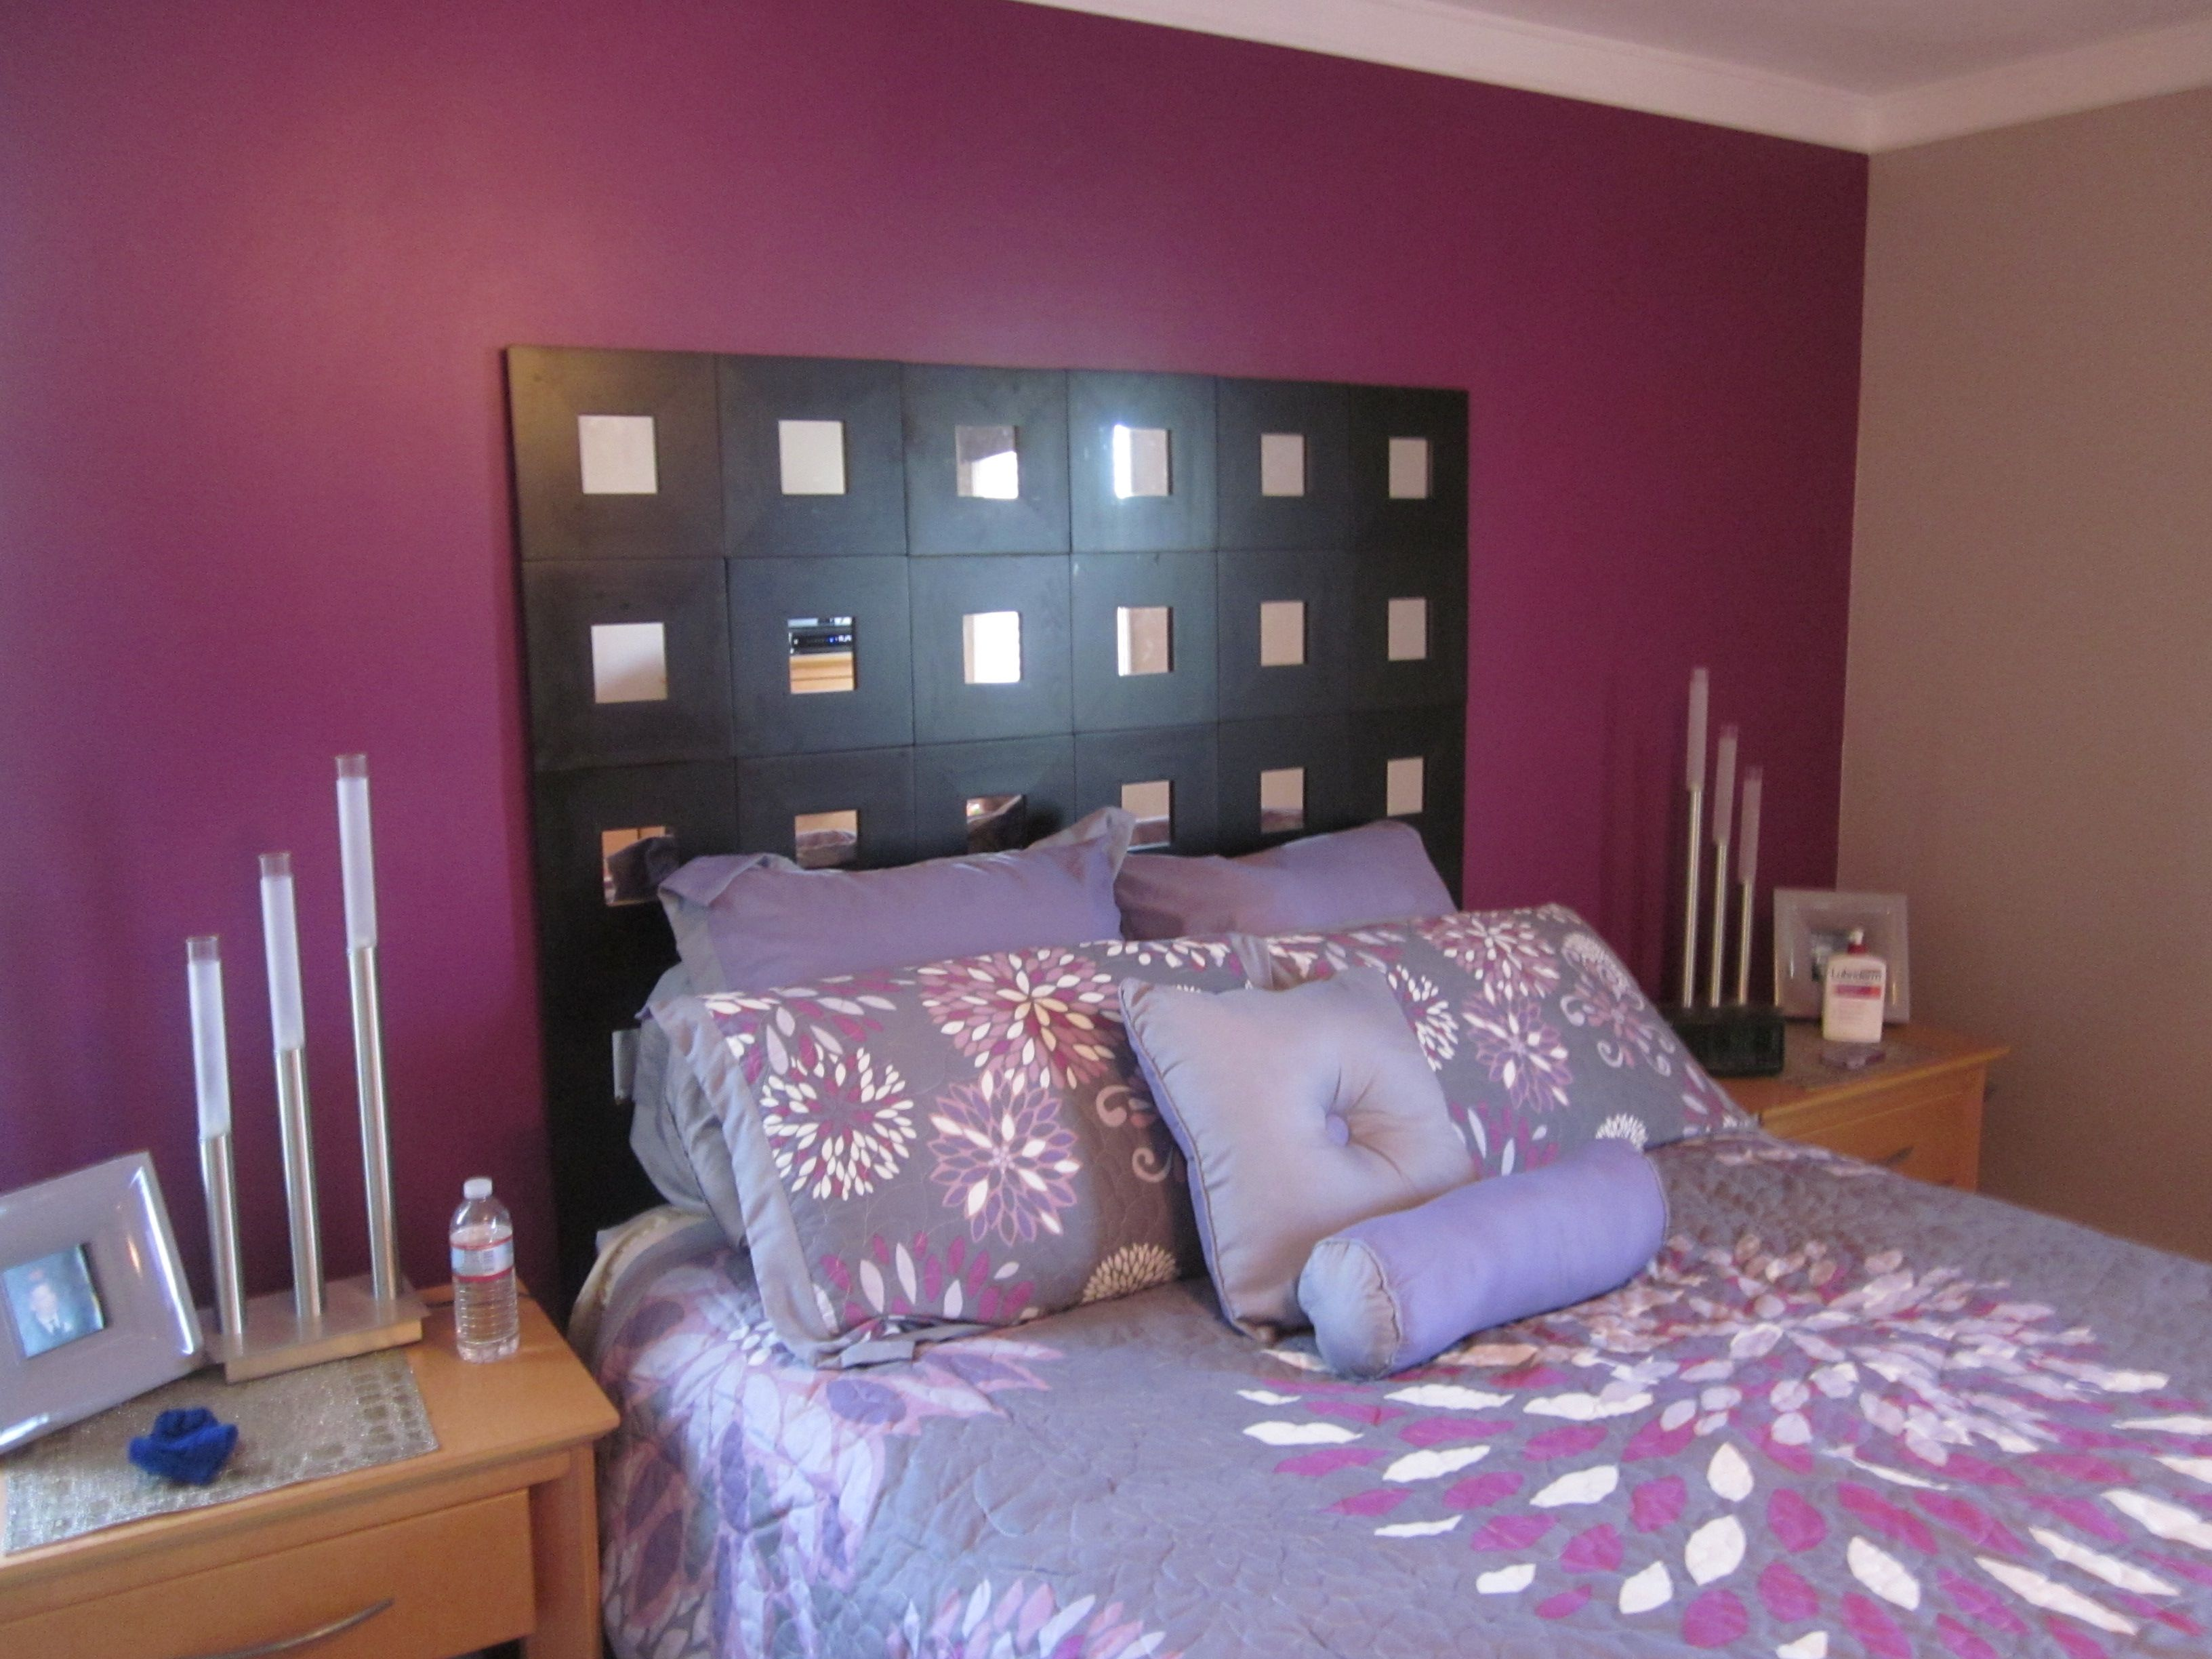 DIY mirror headboard I think it would be cool as picture frames